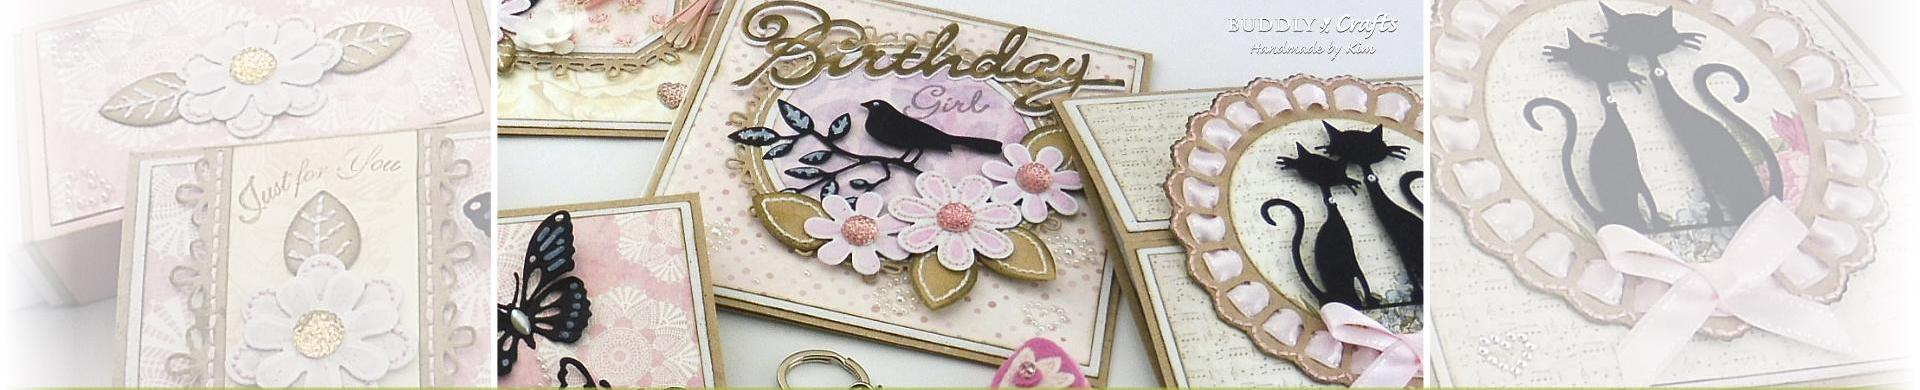 Papercraft Tools & Die Cutting